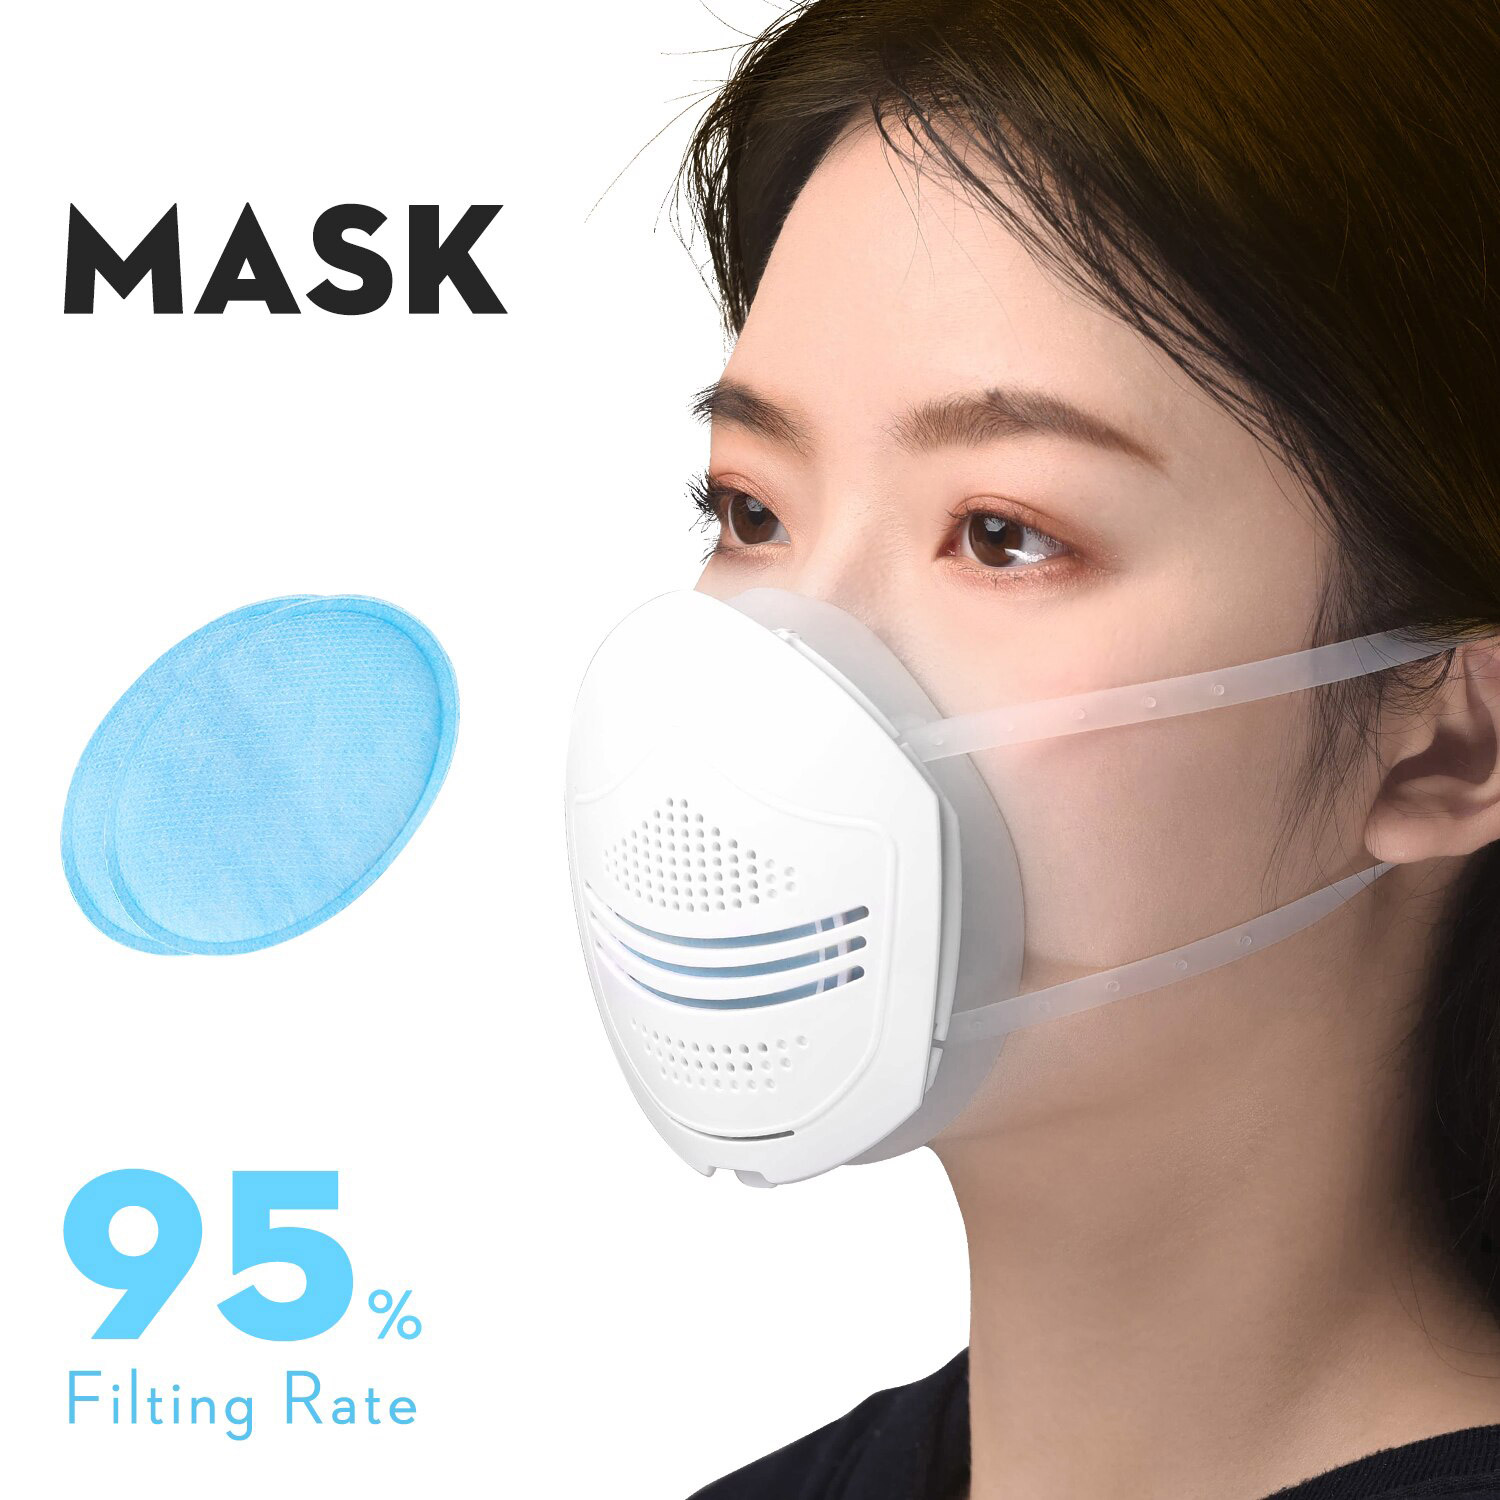 Reusable Washable Multi-Function Air Filter Mask Filtration Efficiency 95% With 30pcs Replaceable Filter Element For Anti-Pollution Dust Allergy Haze - White